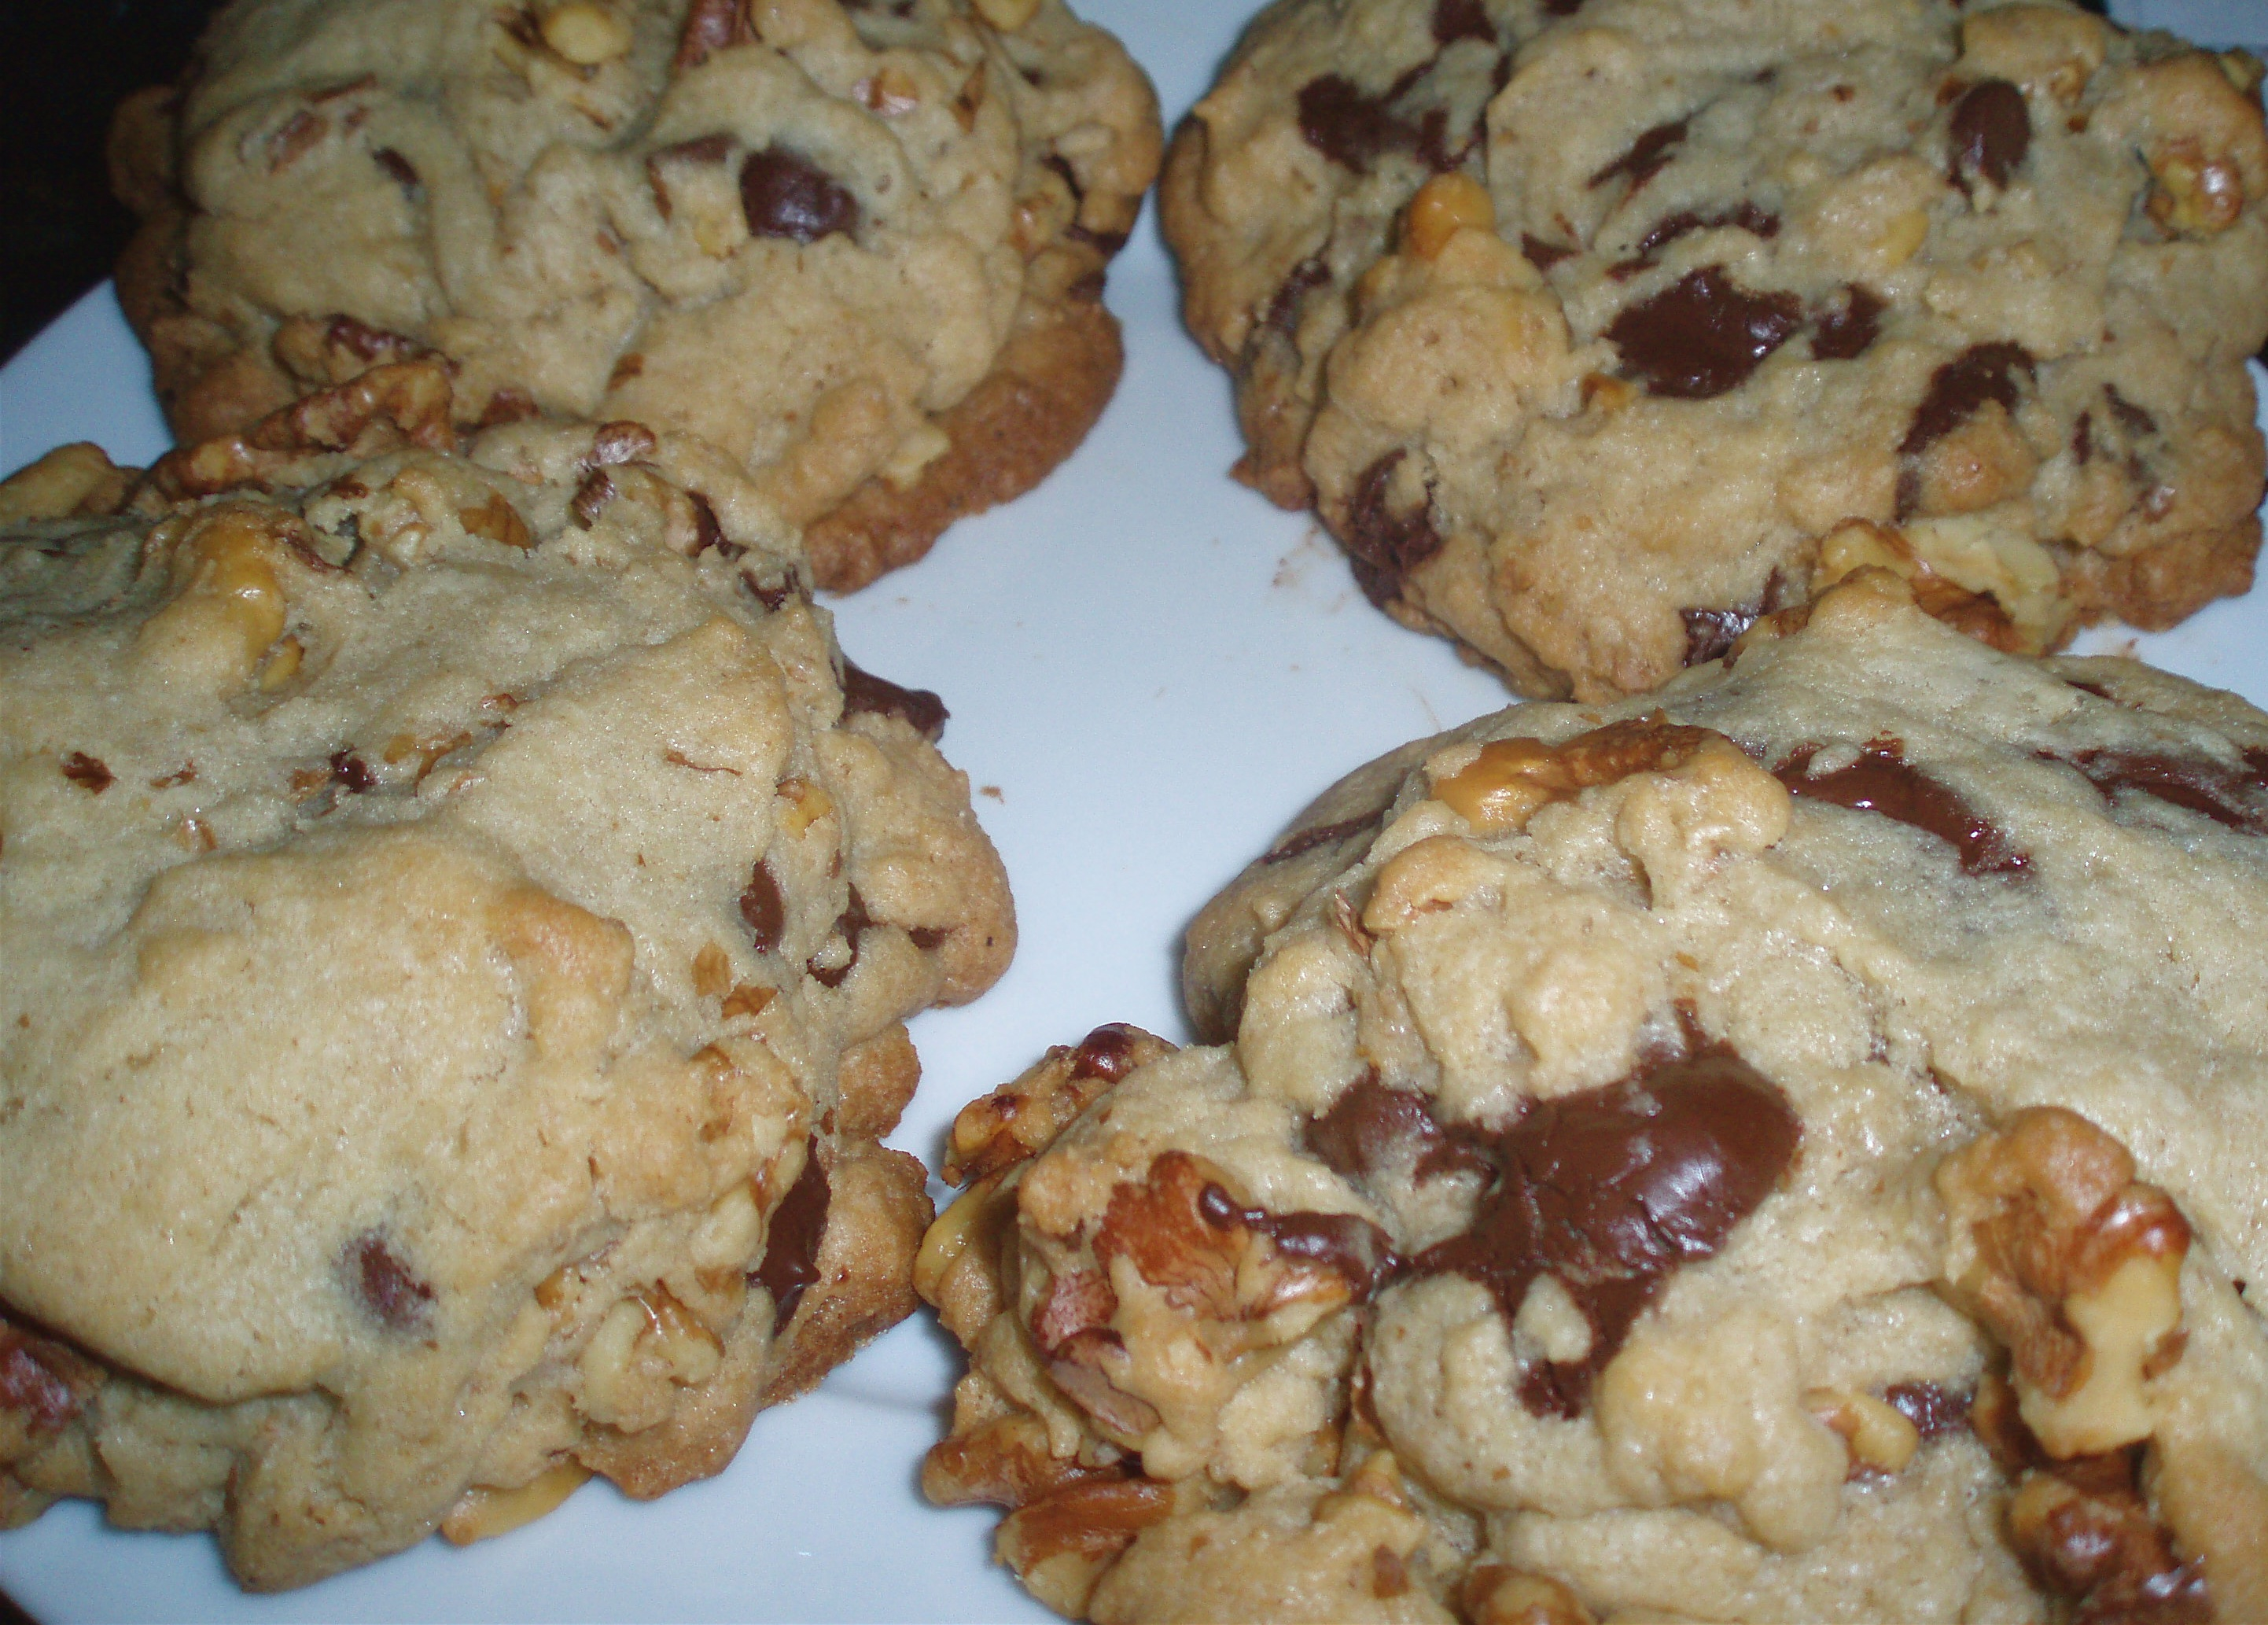 Chocolate Chip Walnut Cookies | Coolinary, Inc.